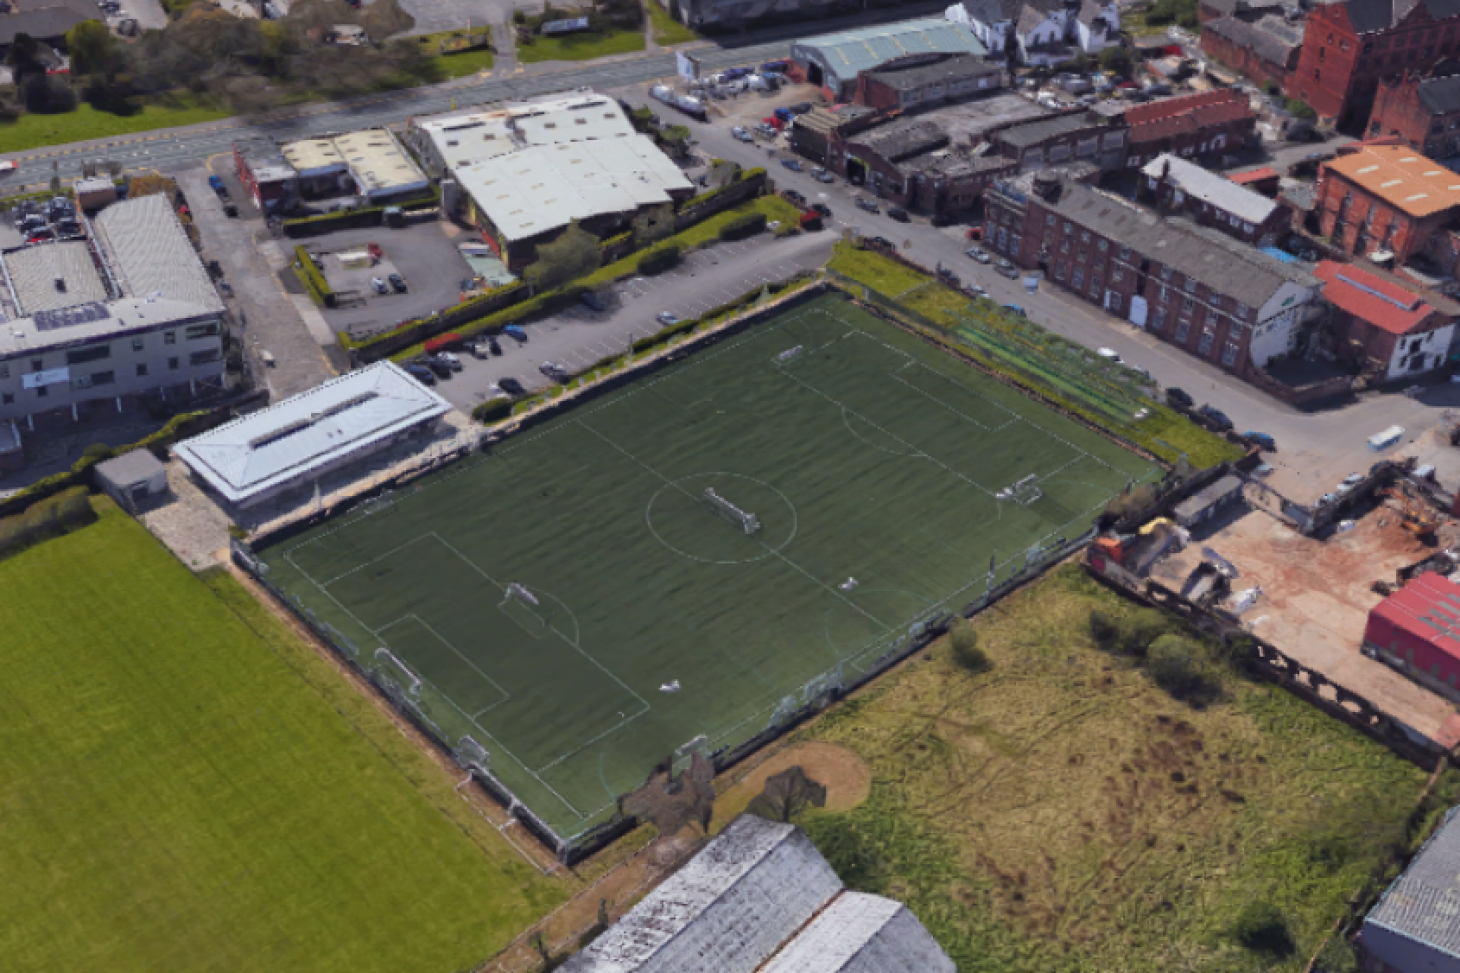 Nicholls Community Football Centre 5 a side | 3G Astroturf football pitch